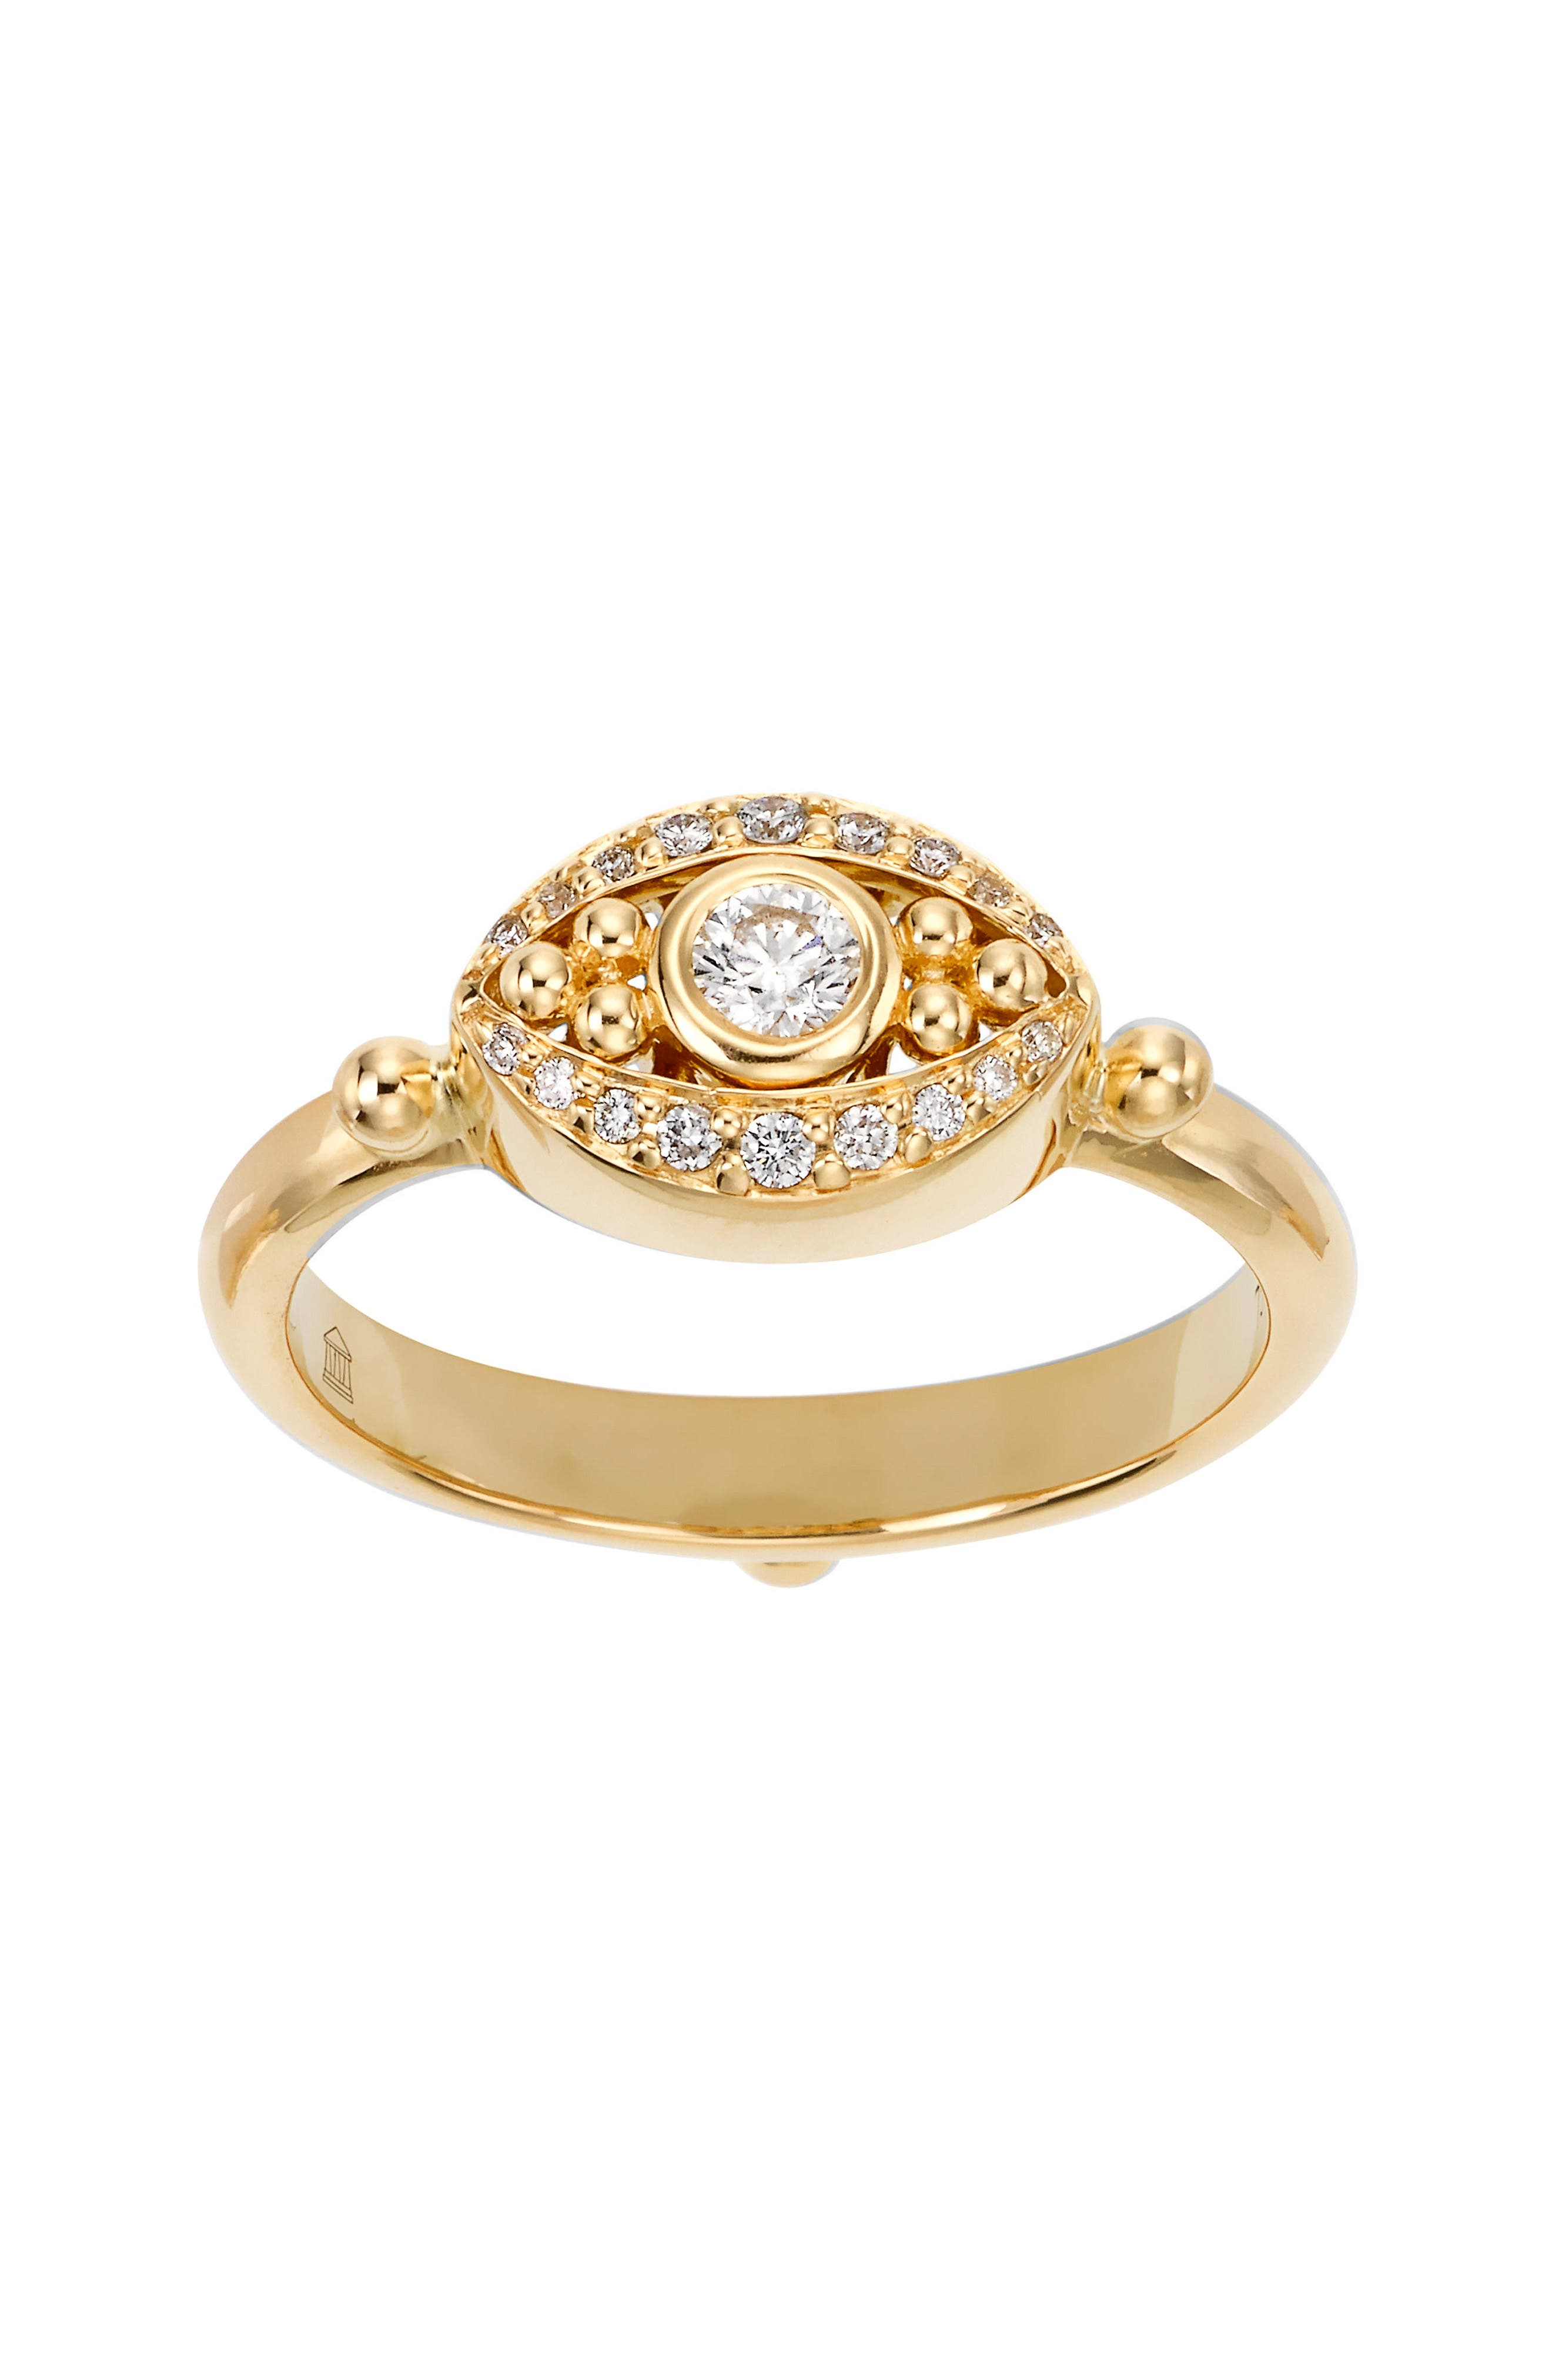 Temple St. Clair Diamond Evil Eye Ring,                         Main,                         color, YELLOW GOLD